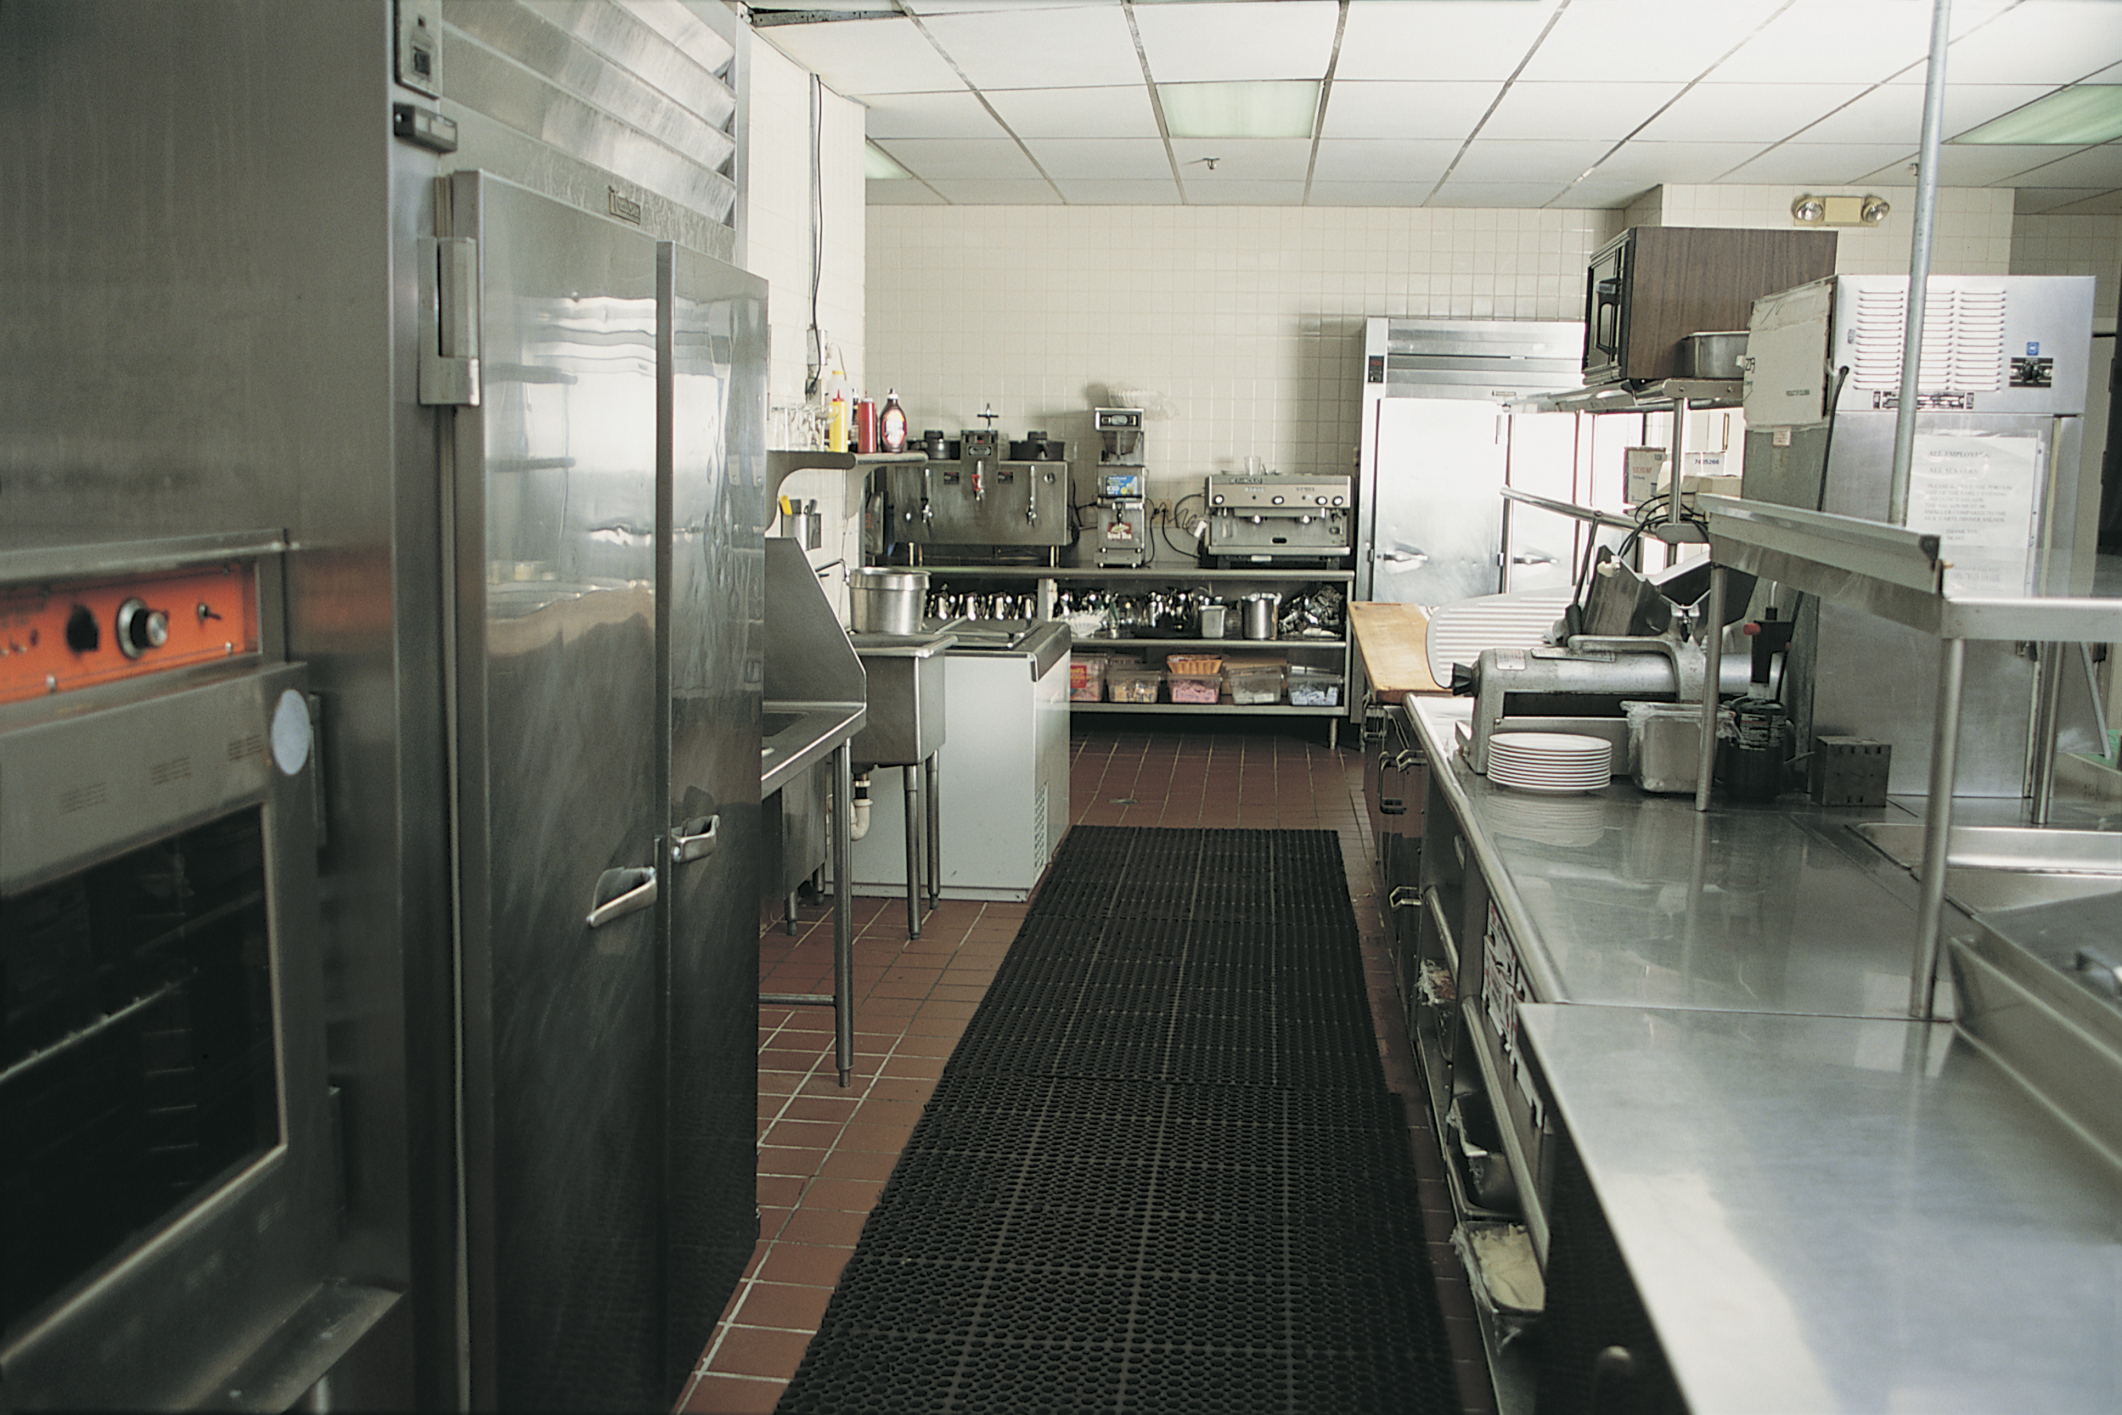 Commercial Kitchen Design App Free The Estimated Cost For A Commercial Kitchen In A Small Business